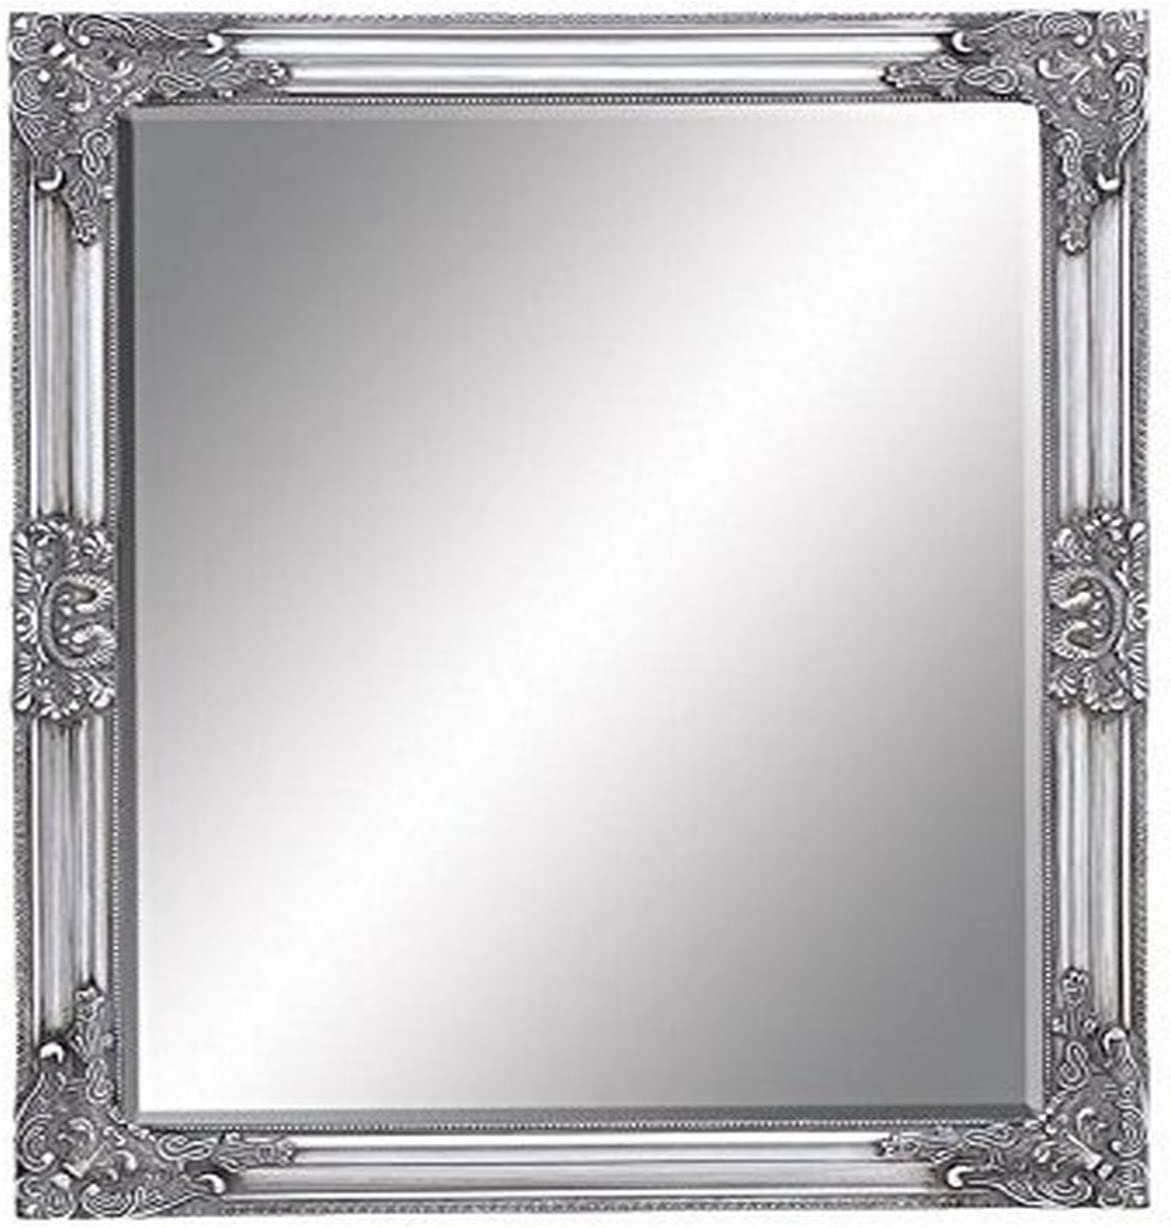 Amazon Com Deco 79 Framed Bevelled Mirror 26 By 32 Home Kitchen